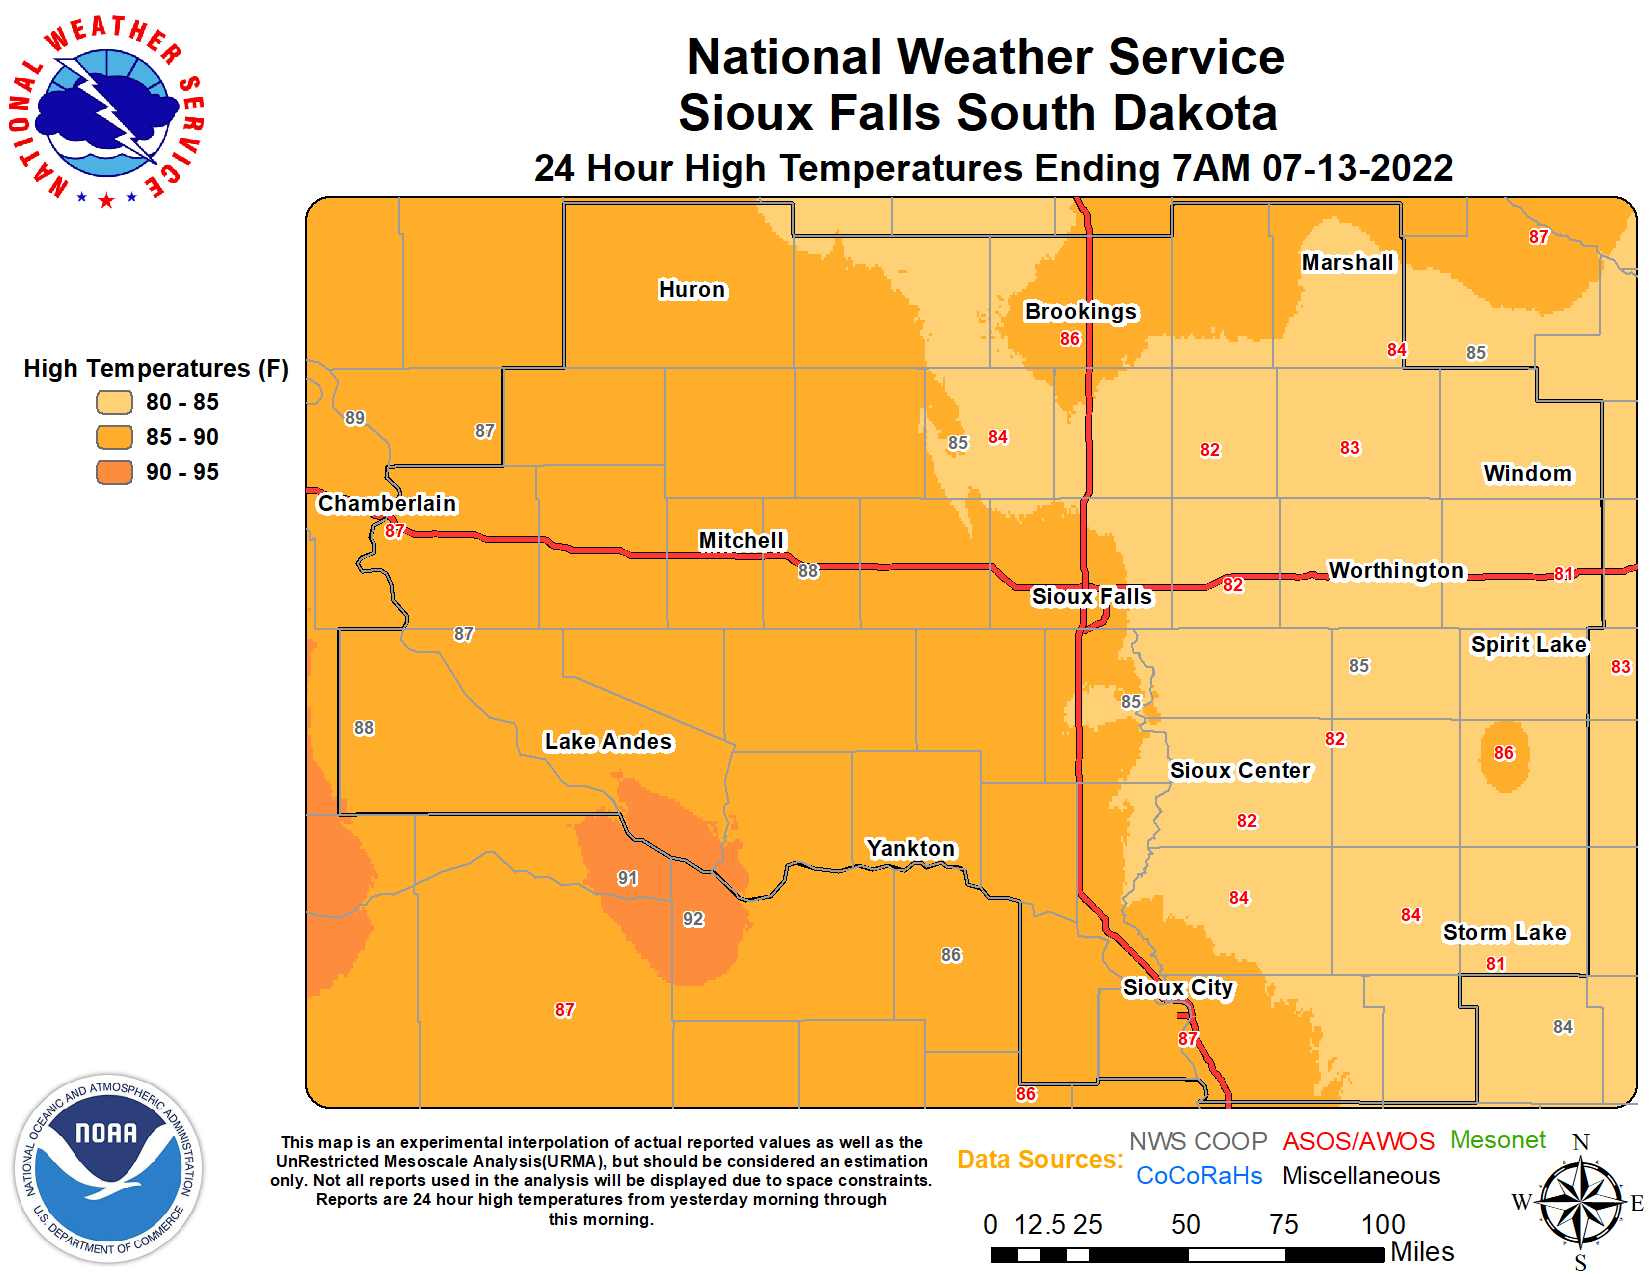 Daily Maps for 24 Hour Weather Reports